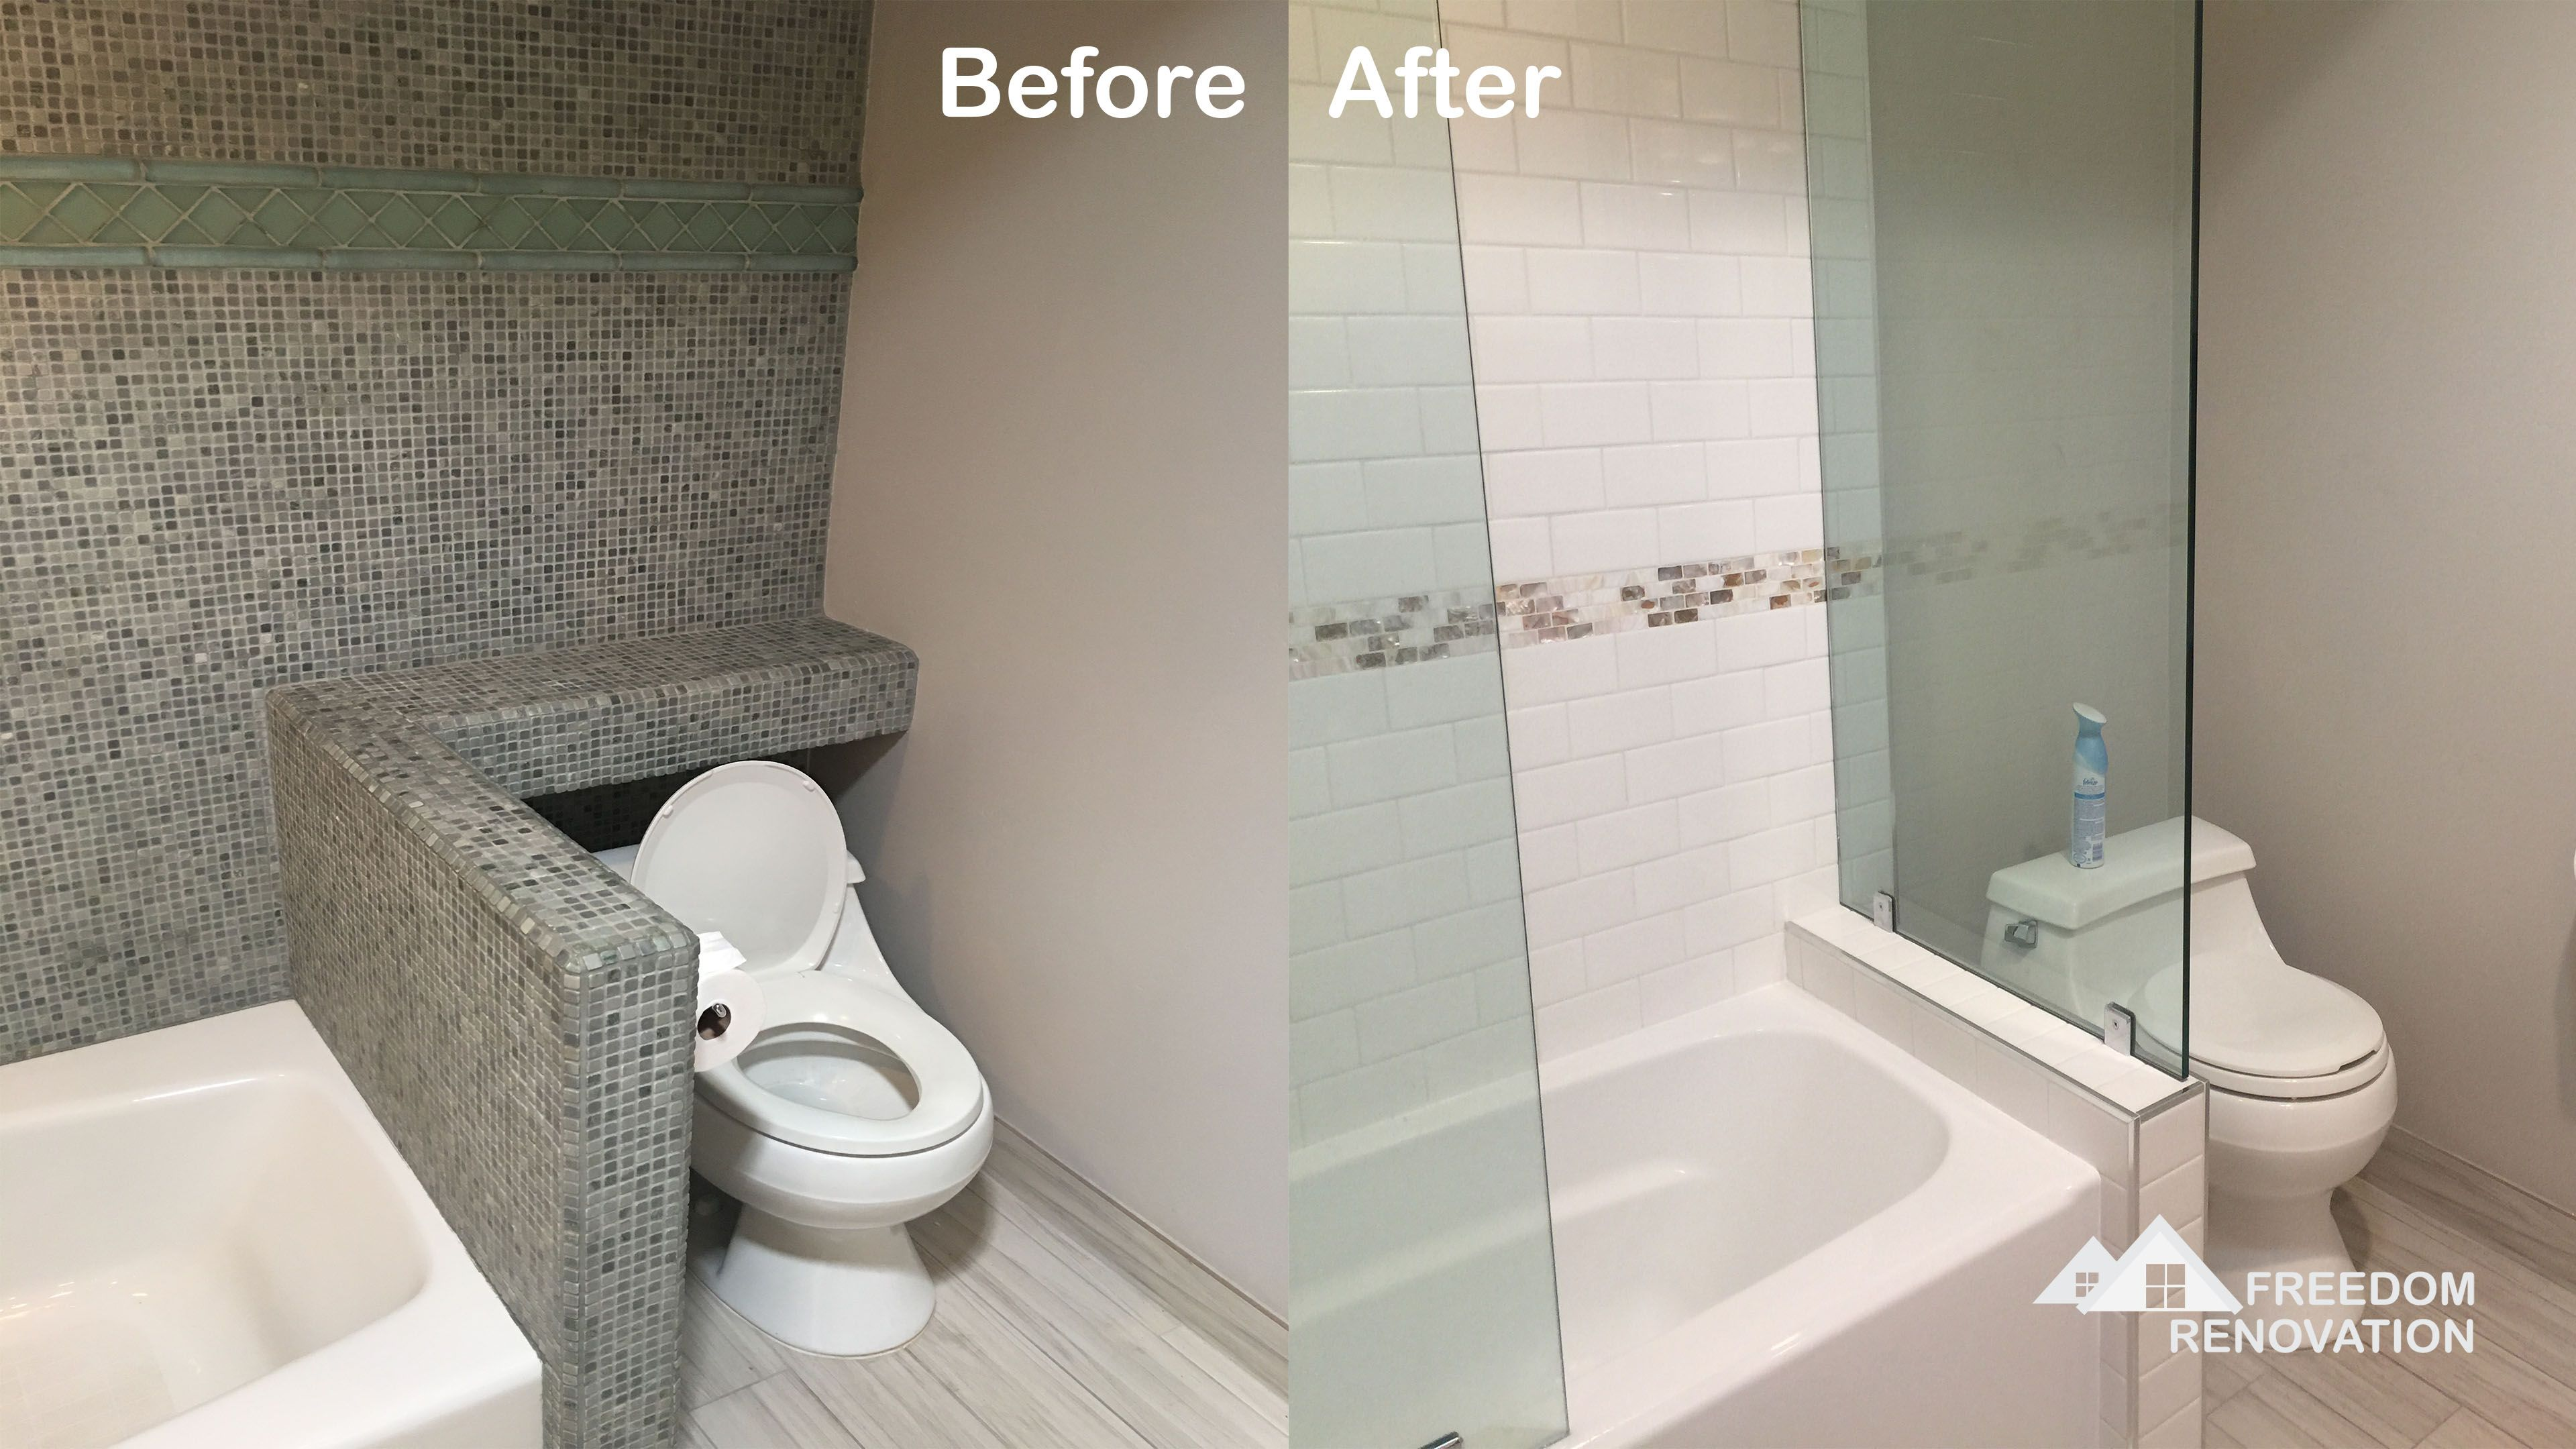 Before And After Of A Bathroom Remodel Brought To You